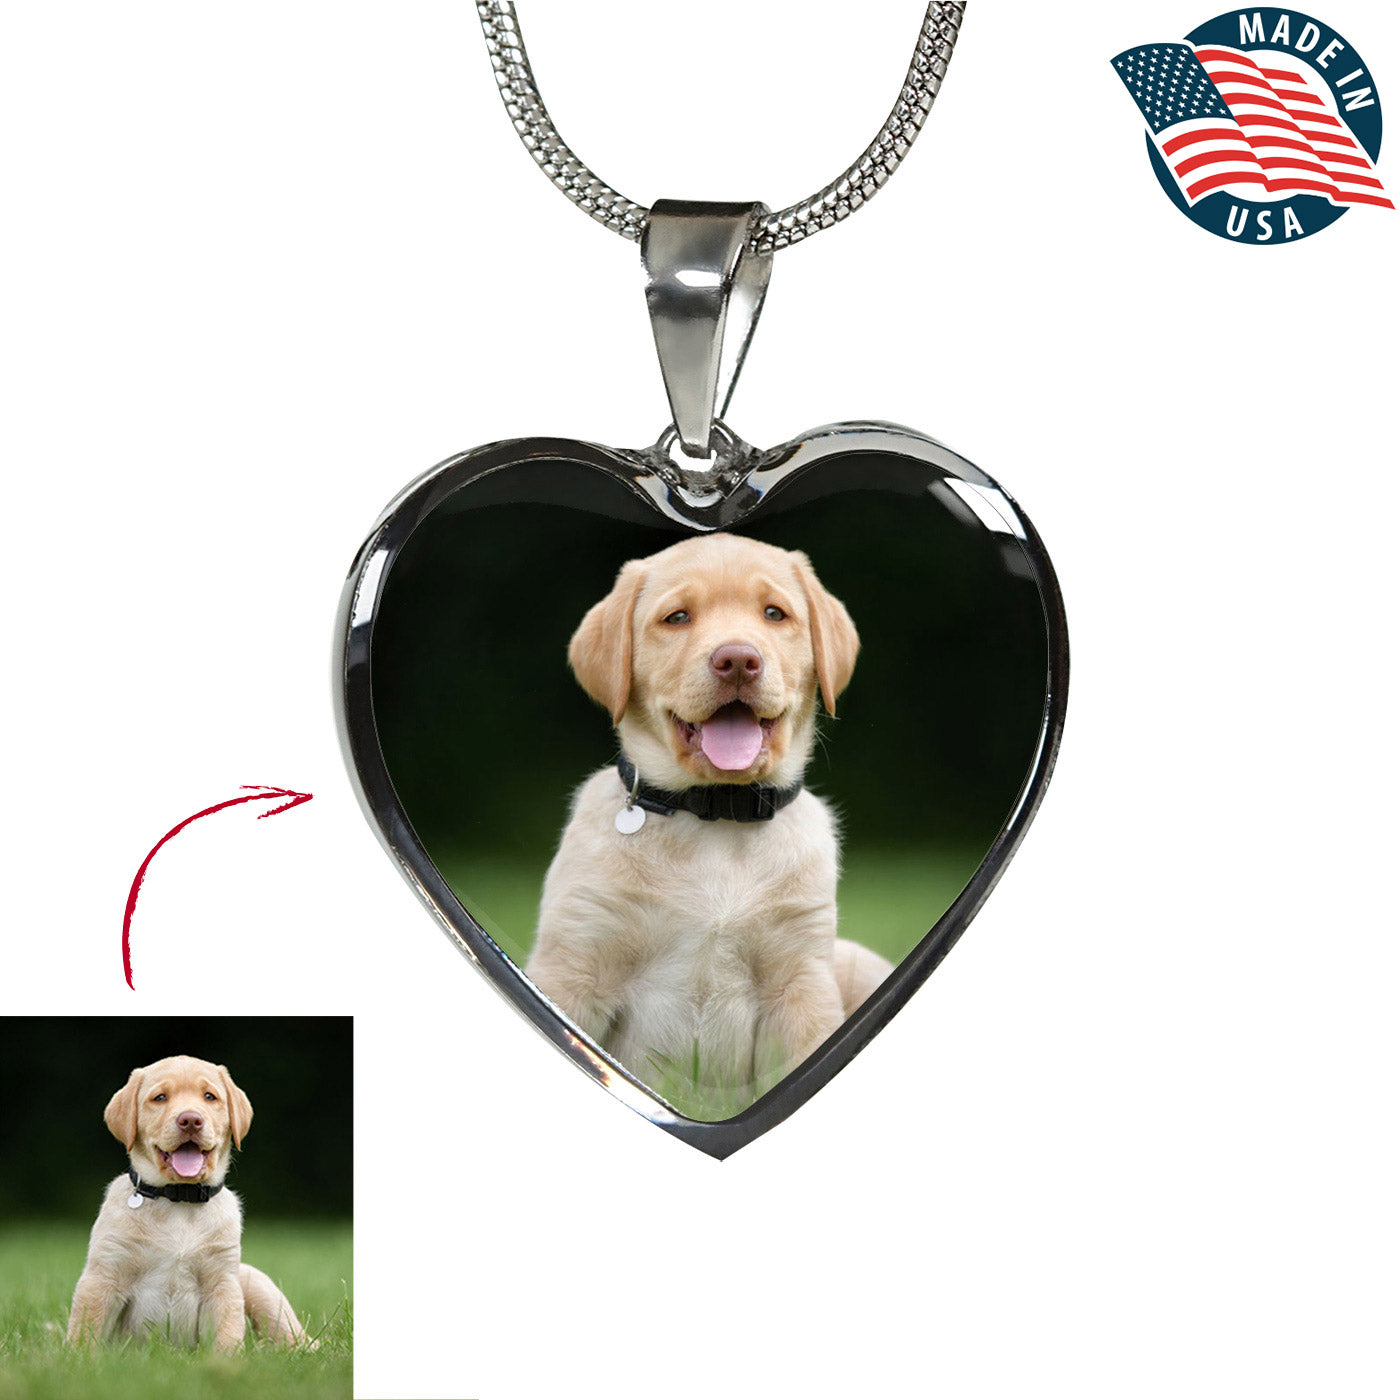 Personalized Pet Photo Heart Necklace/Bangle